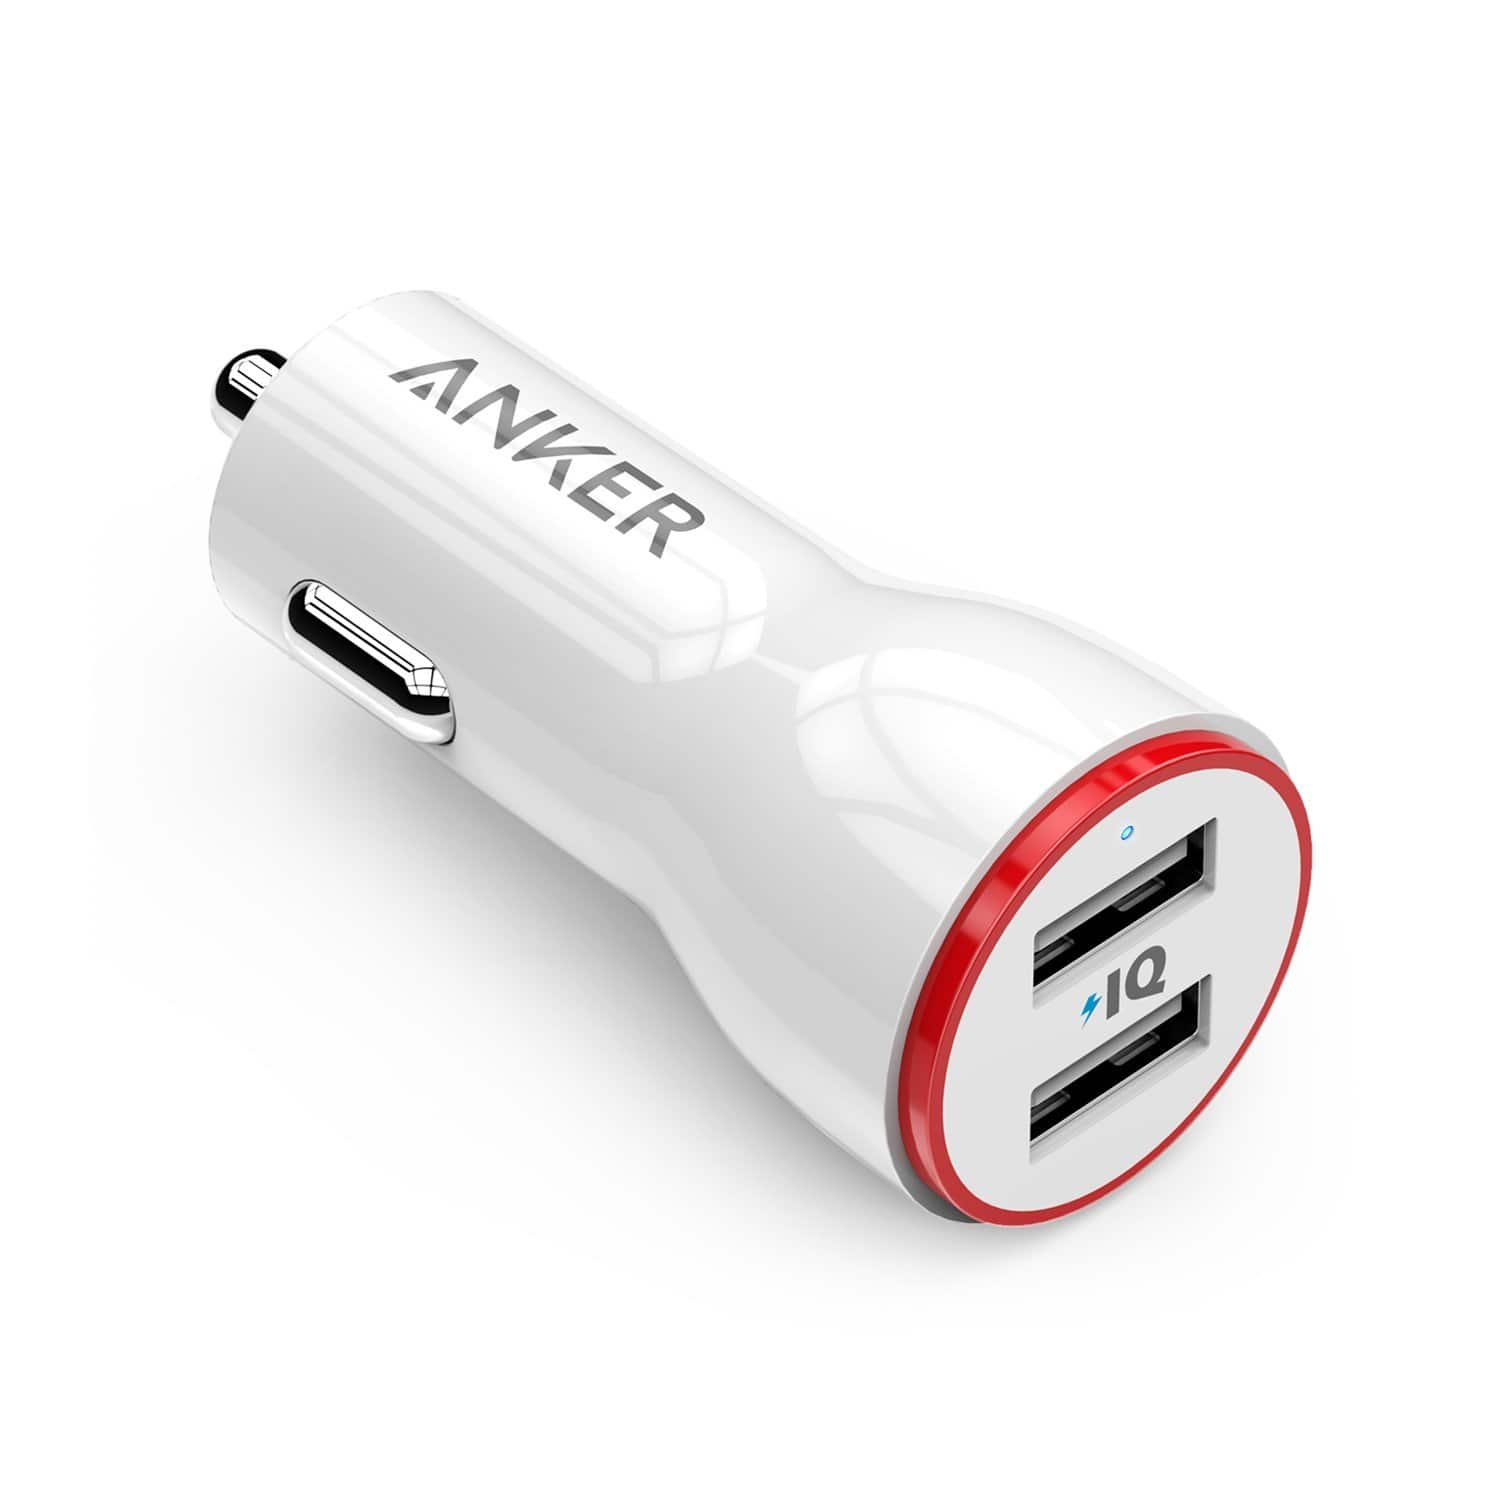 37% off on Anker 24W Dual USB Car Charger $7.58